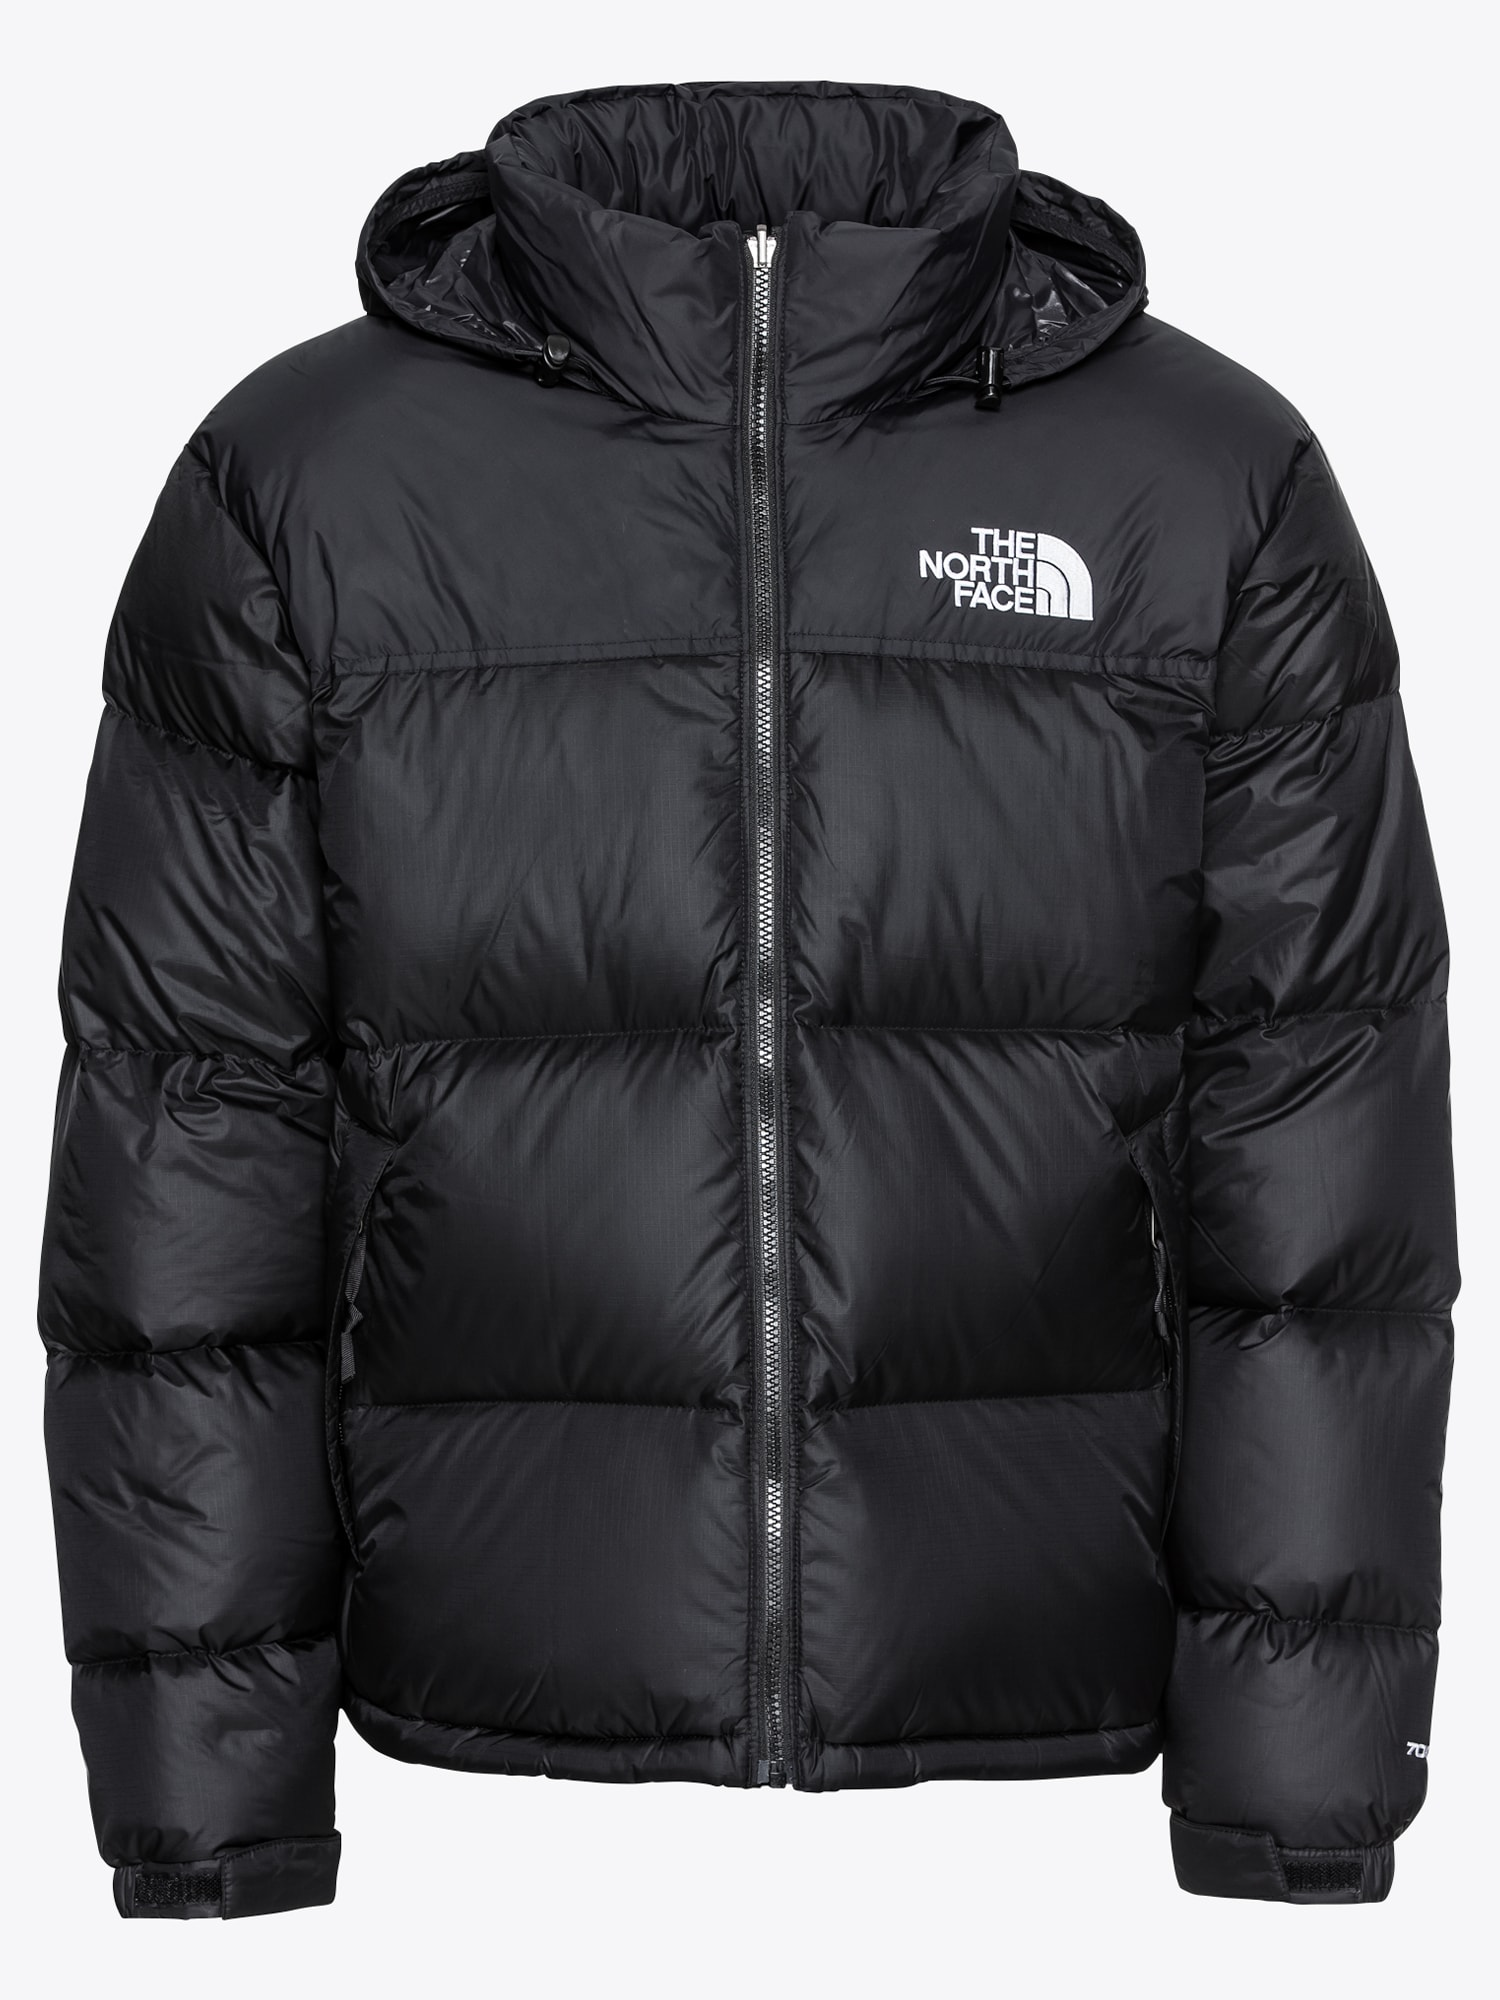 THE NORTH FACE Funkční bunda 1996 RTO NUPTSE černá The North Face